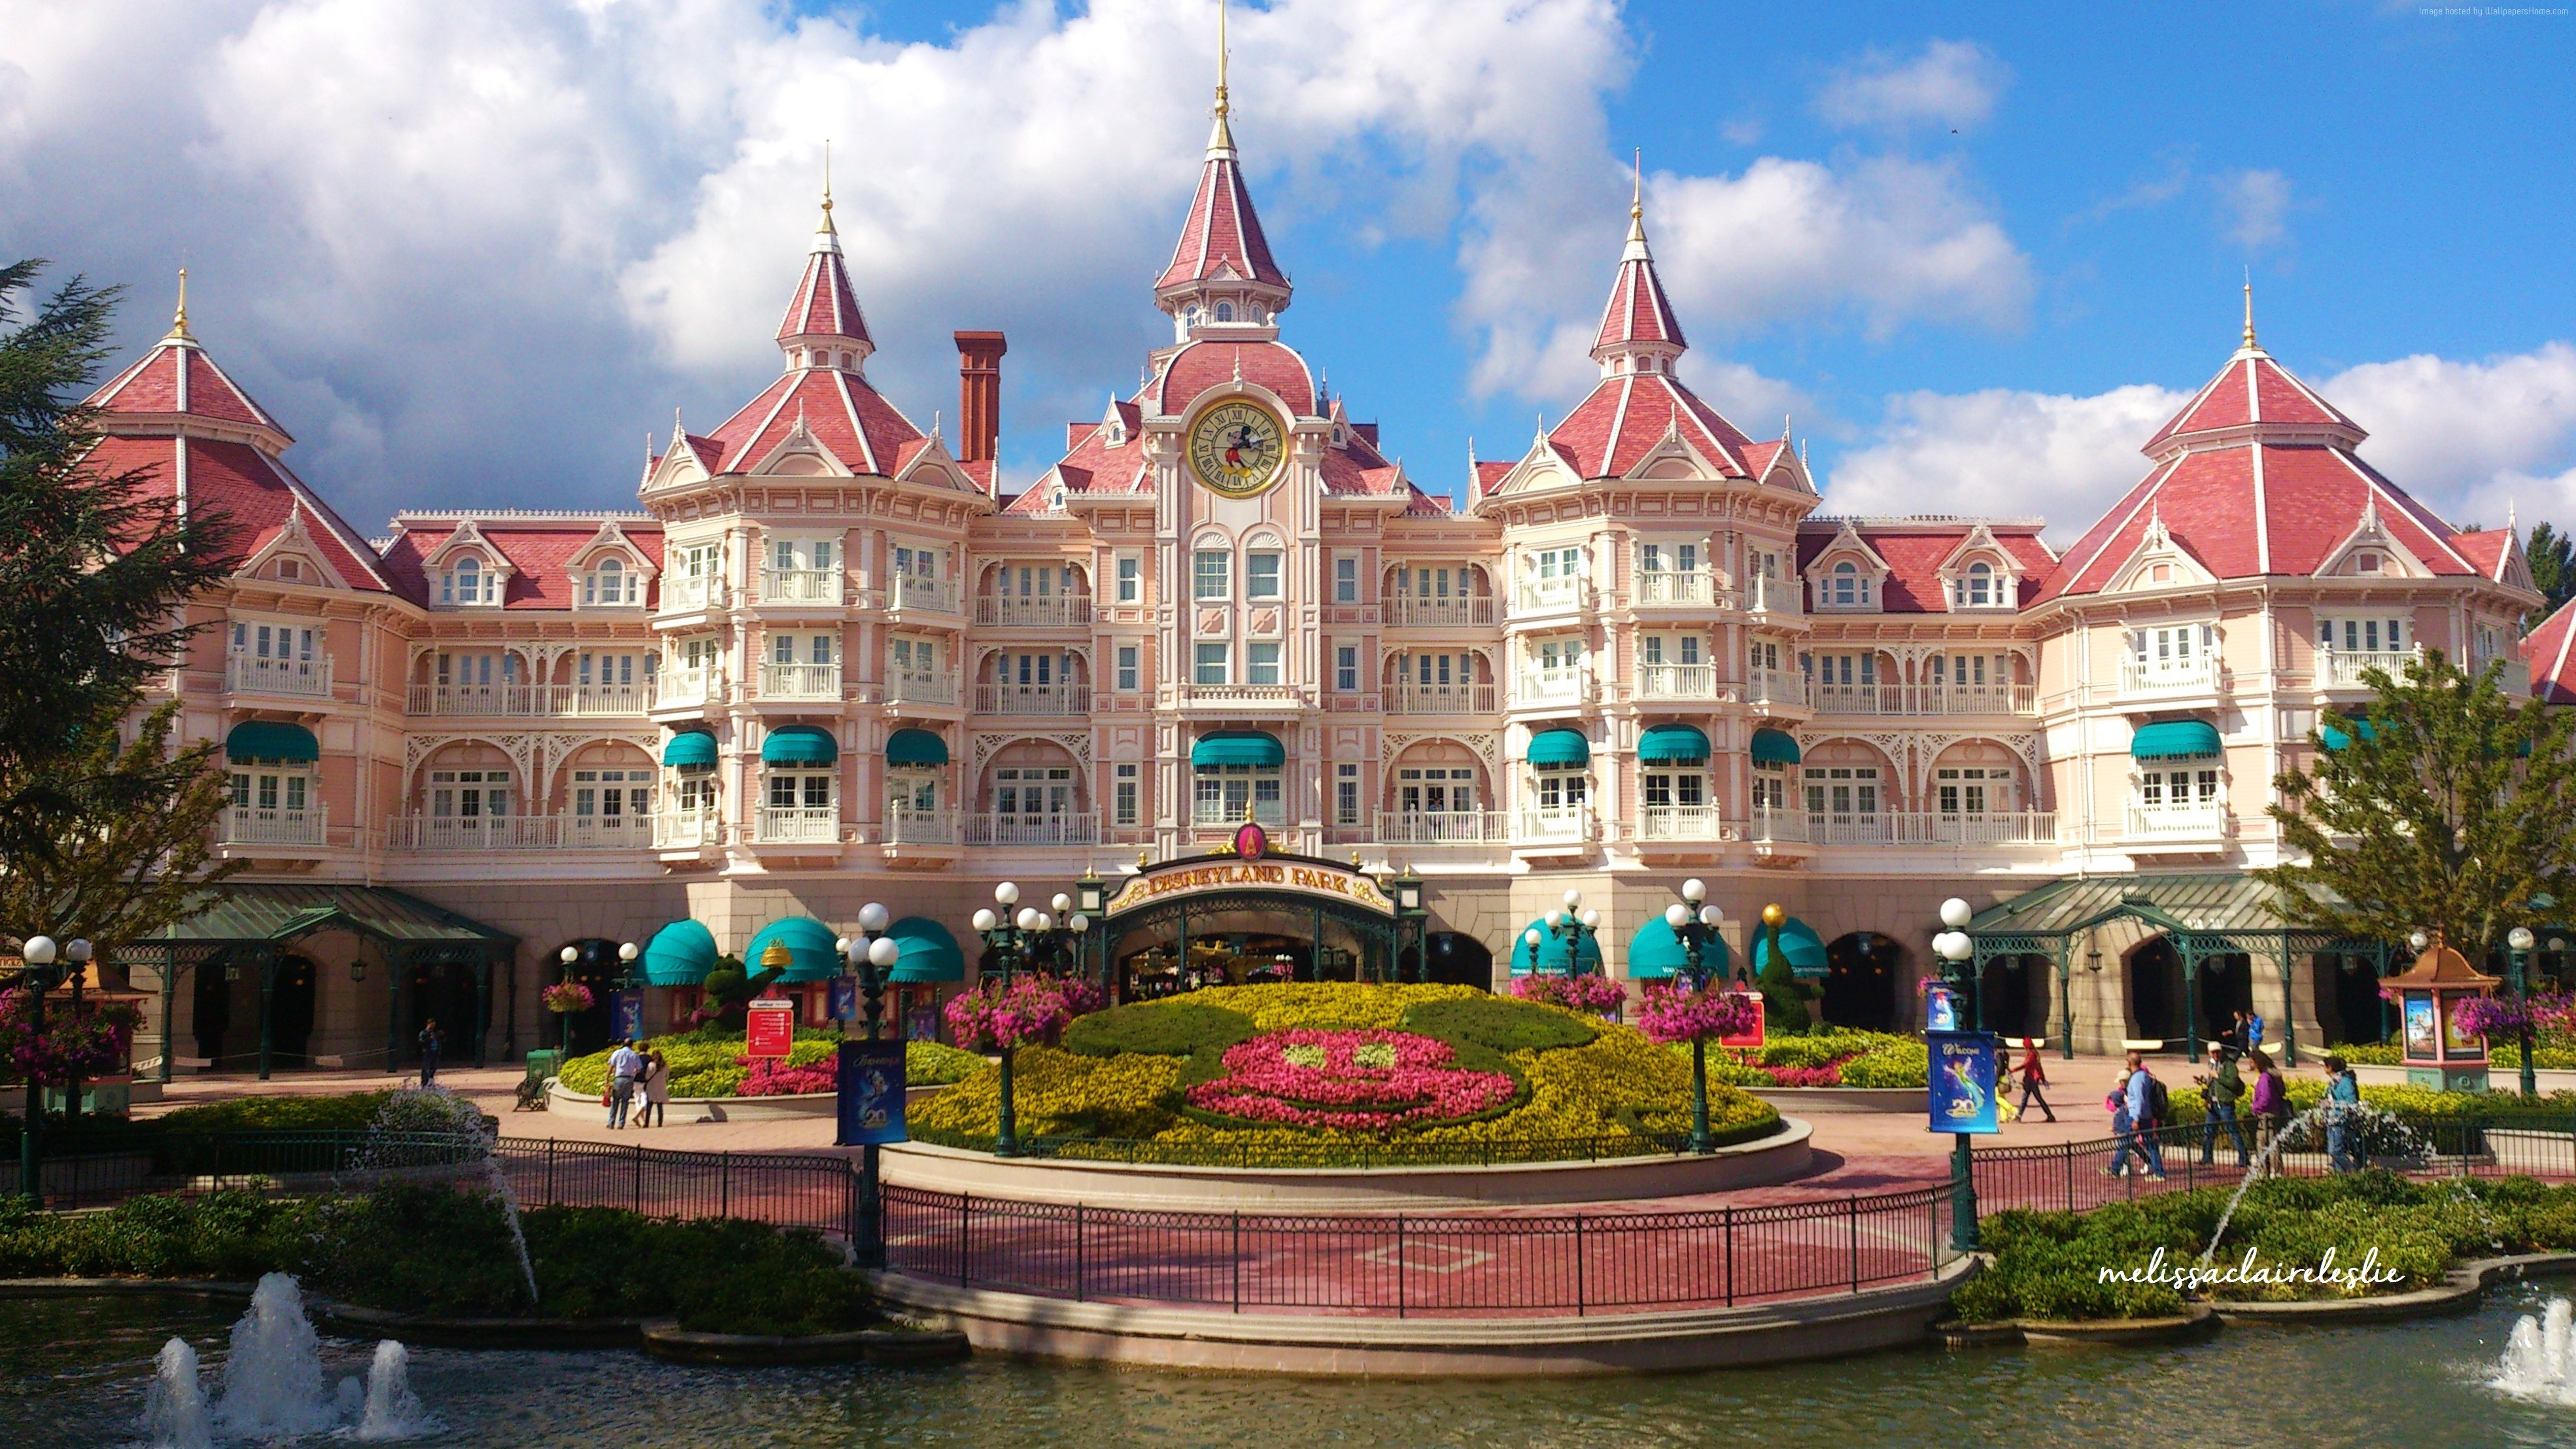 Disneyland hotel in paris france 4k ultra hd wallpaper for Hotel original france